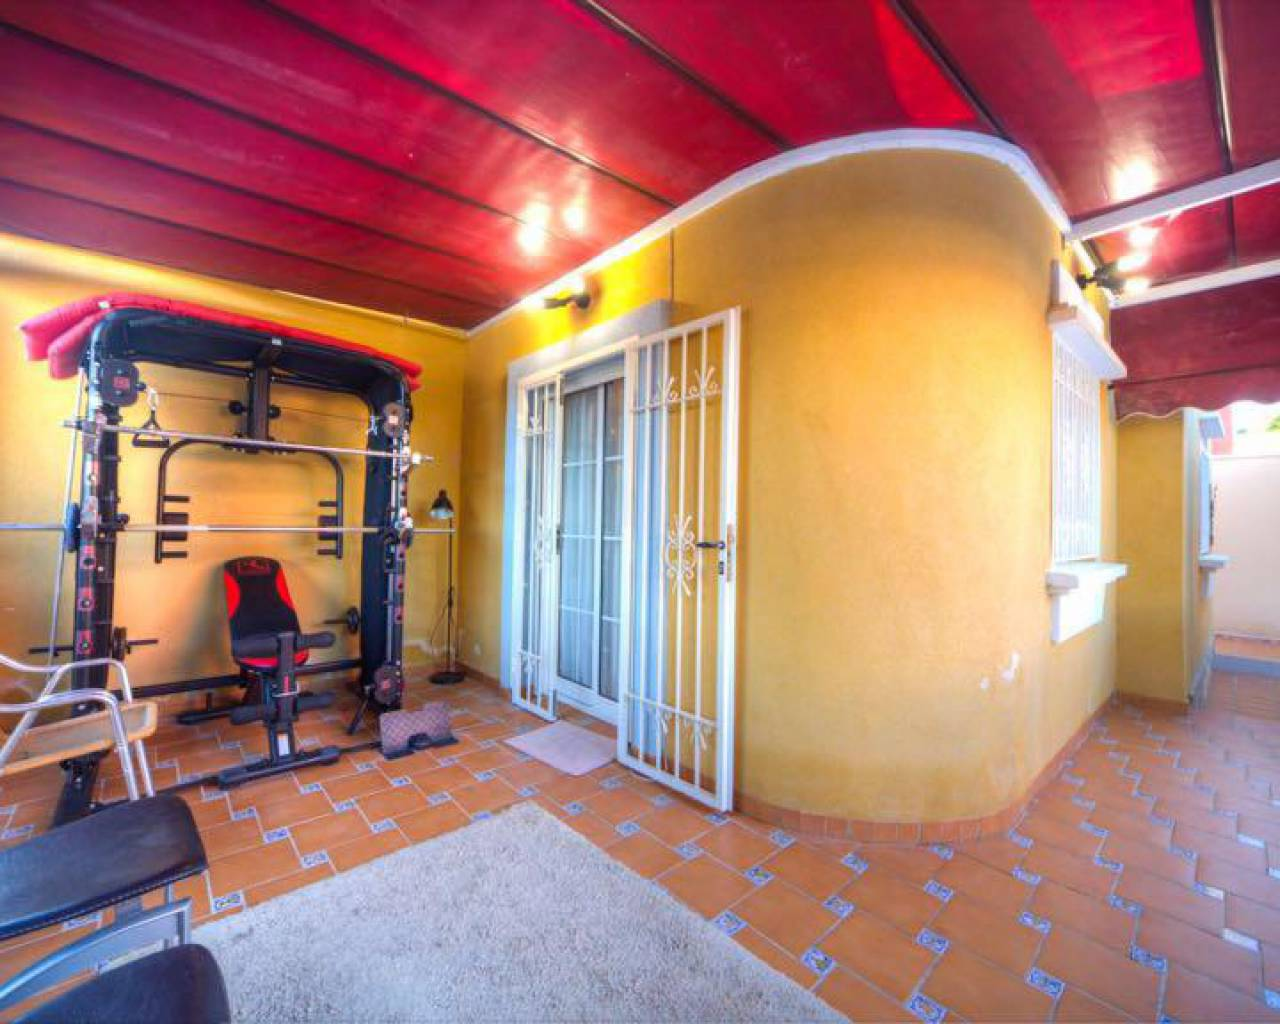 Sale - House - Orihuela-Costa - El Galan